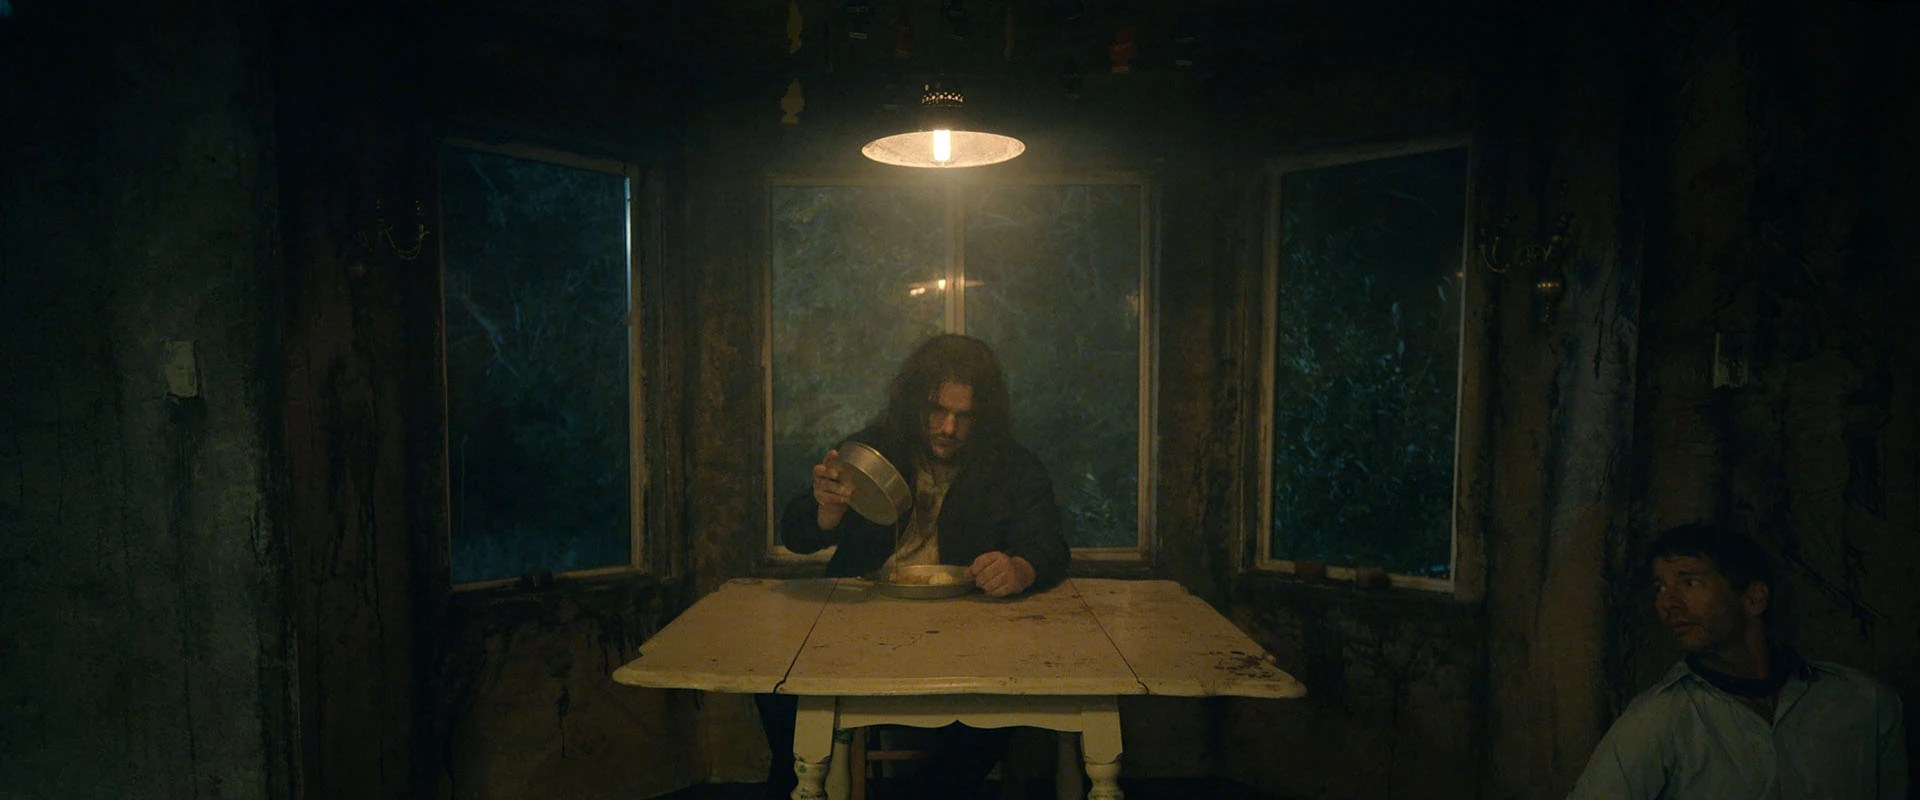 frame grab of a man at a table from the horror/comedy short film Inflatio